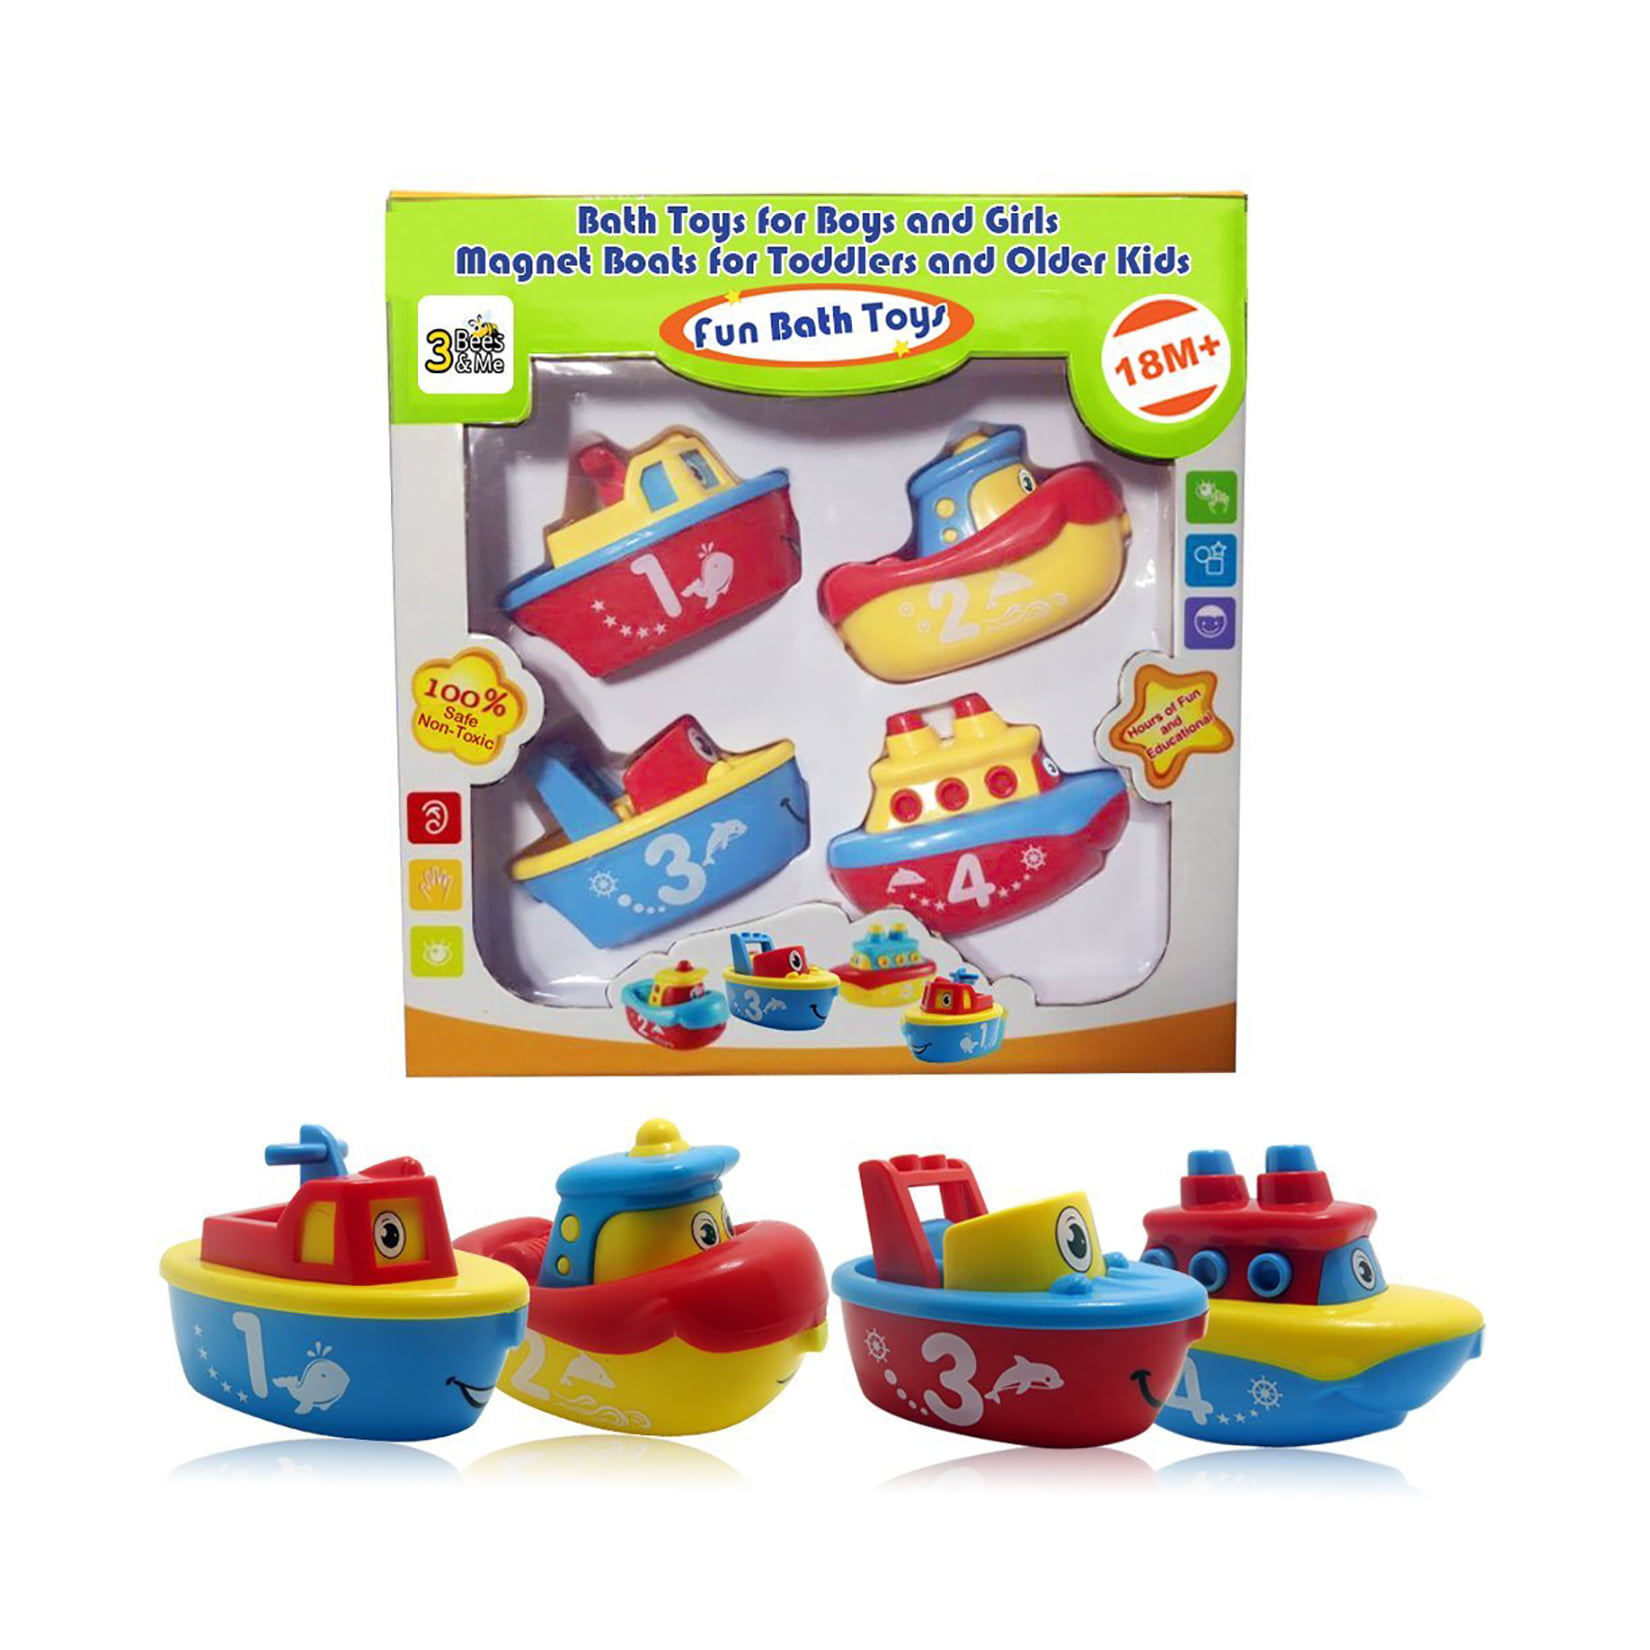 3 Bees & Me Bath Toys for Boys and Girls Magnet Boats for Toddlers and Older Kids Fun and Educational 4 Boat... by 3 Bees and Me